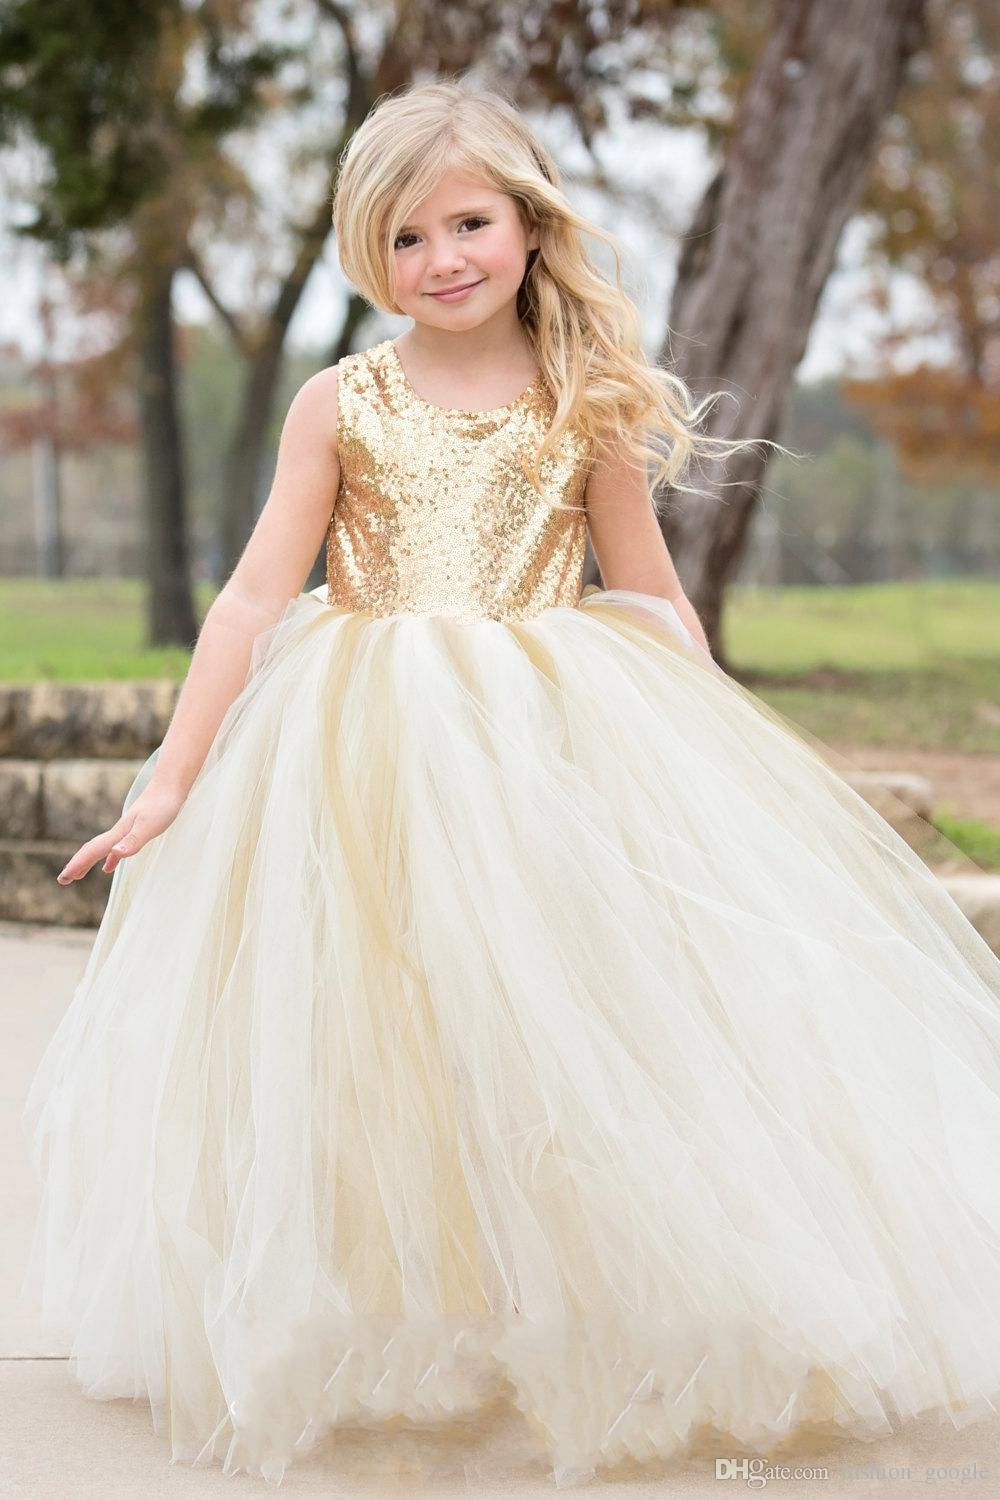 Lace Tulle Off-The-Shoulder Half Sleeve Ball Gown Flower ... |Flower Girl Dress Brooches